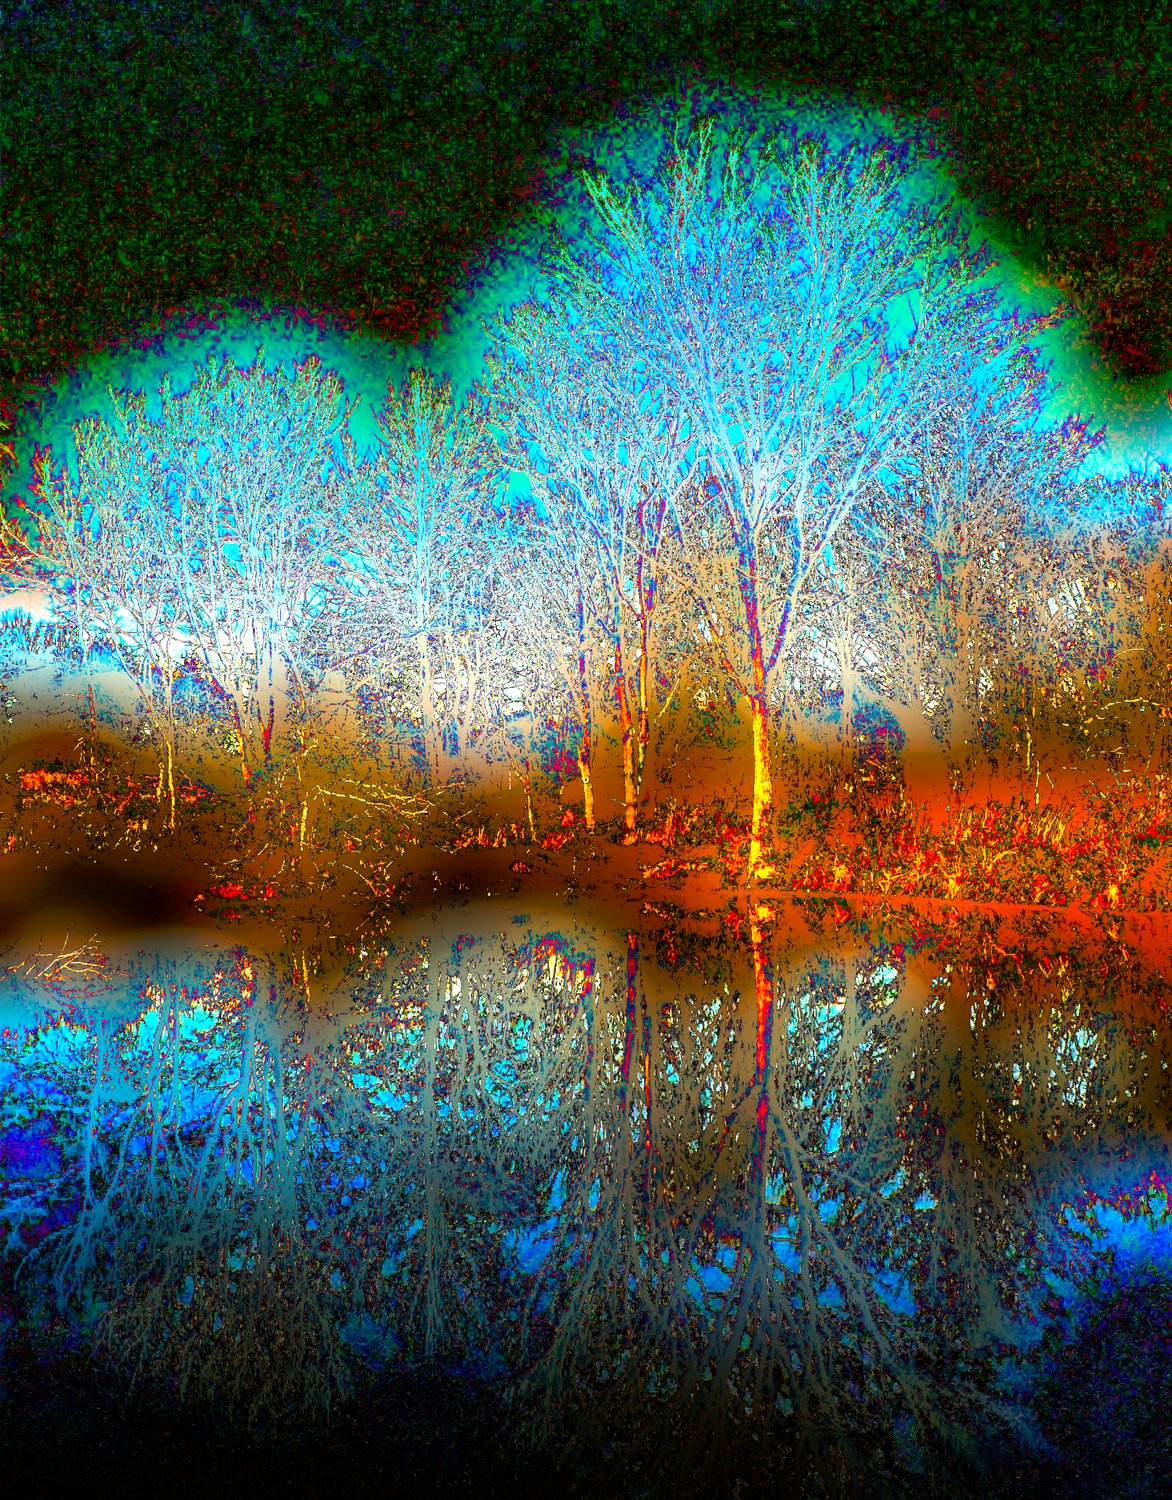 Glowing tree reflected in water #2 - - Fiddling with the colors - Ida Lee Park, Leesburg Virginia - Panasonic DMC-FZ5 - Tony Karp, design, art, photography, techno-impressionist, techno-impressionism, aerial photography , drone , drones , dji , mavic pro , video , 3D printing - Books -